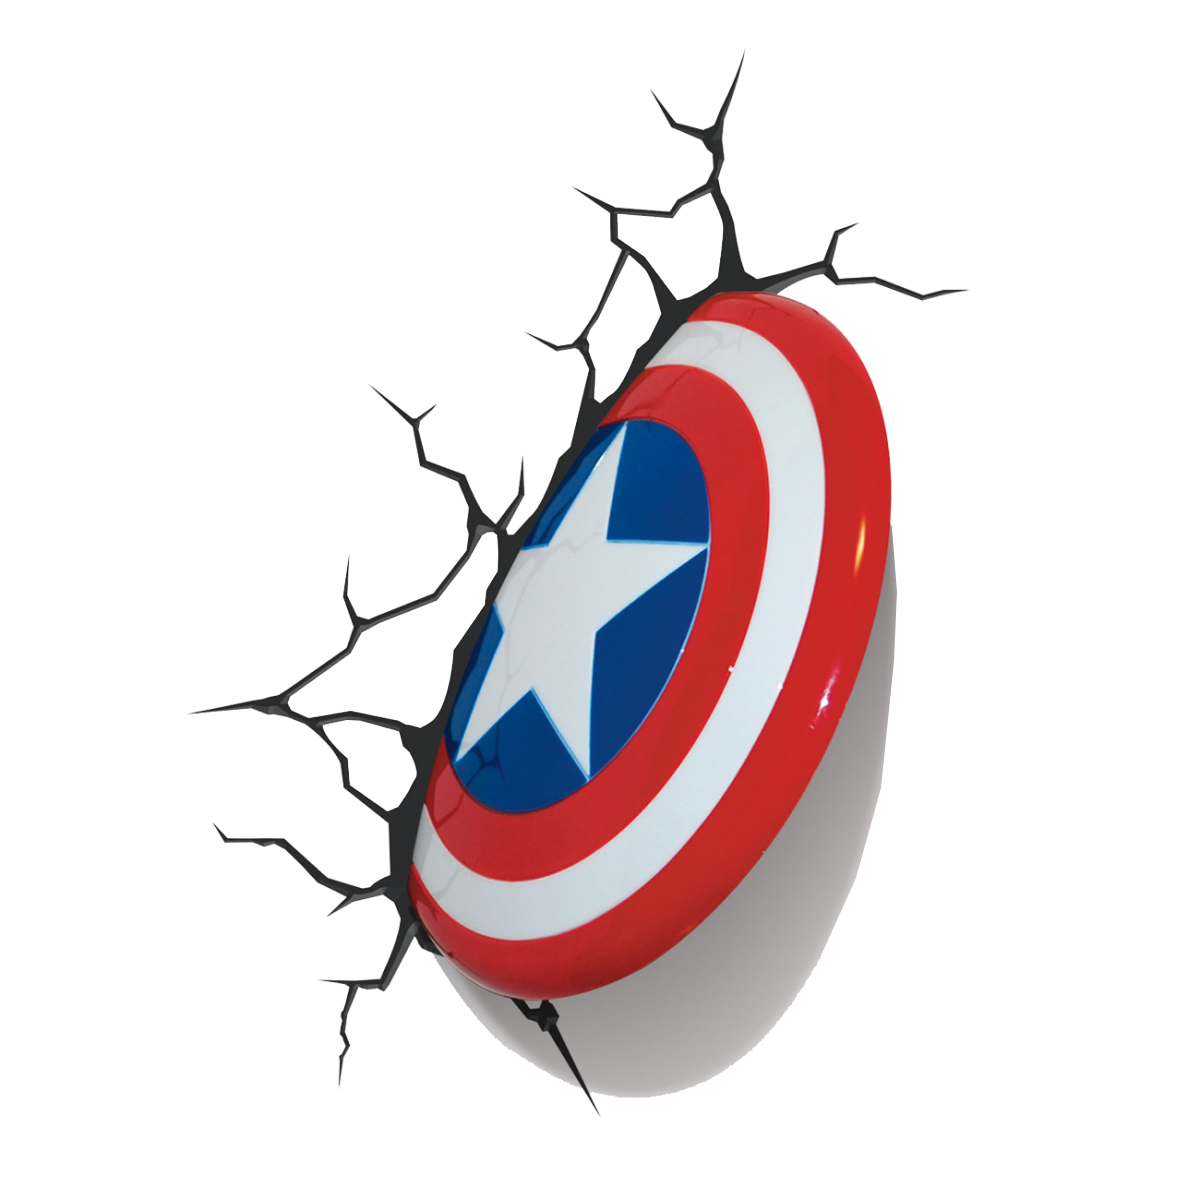 Simbolo Capitao America Png 6 Png Image